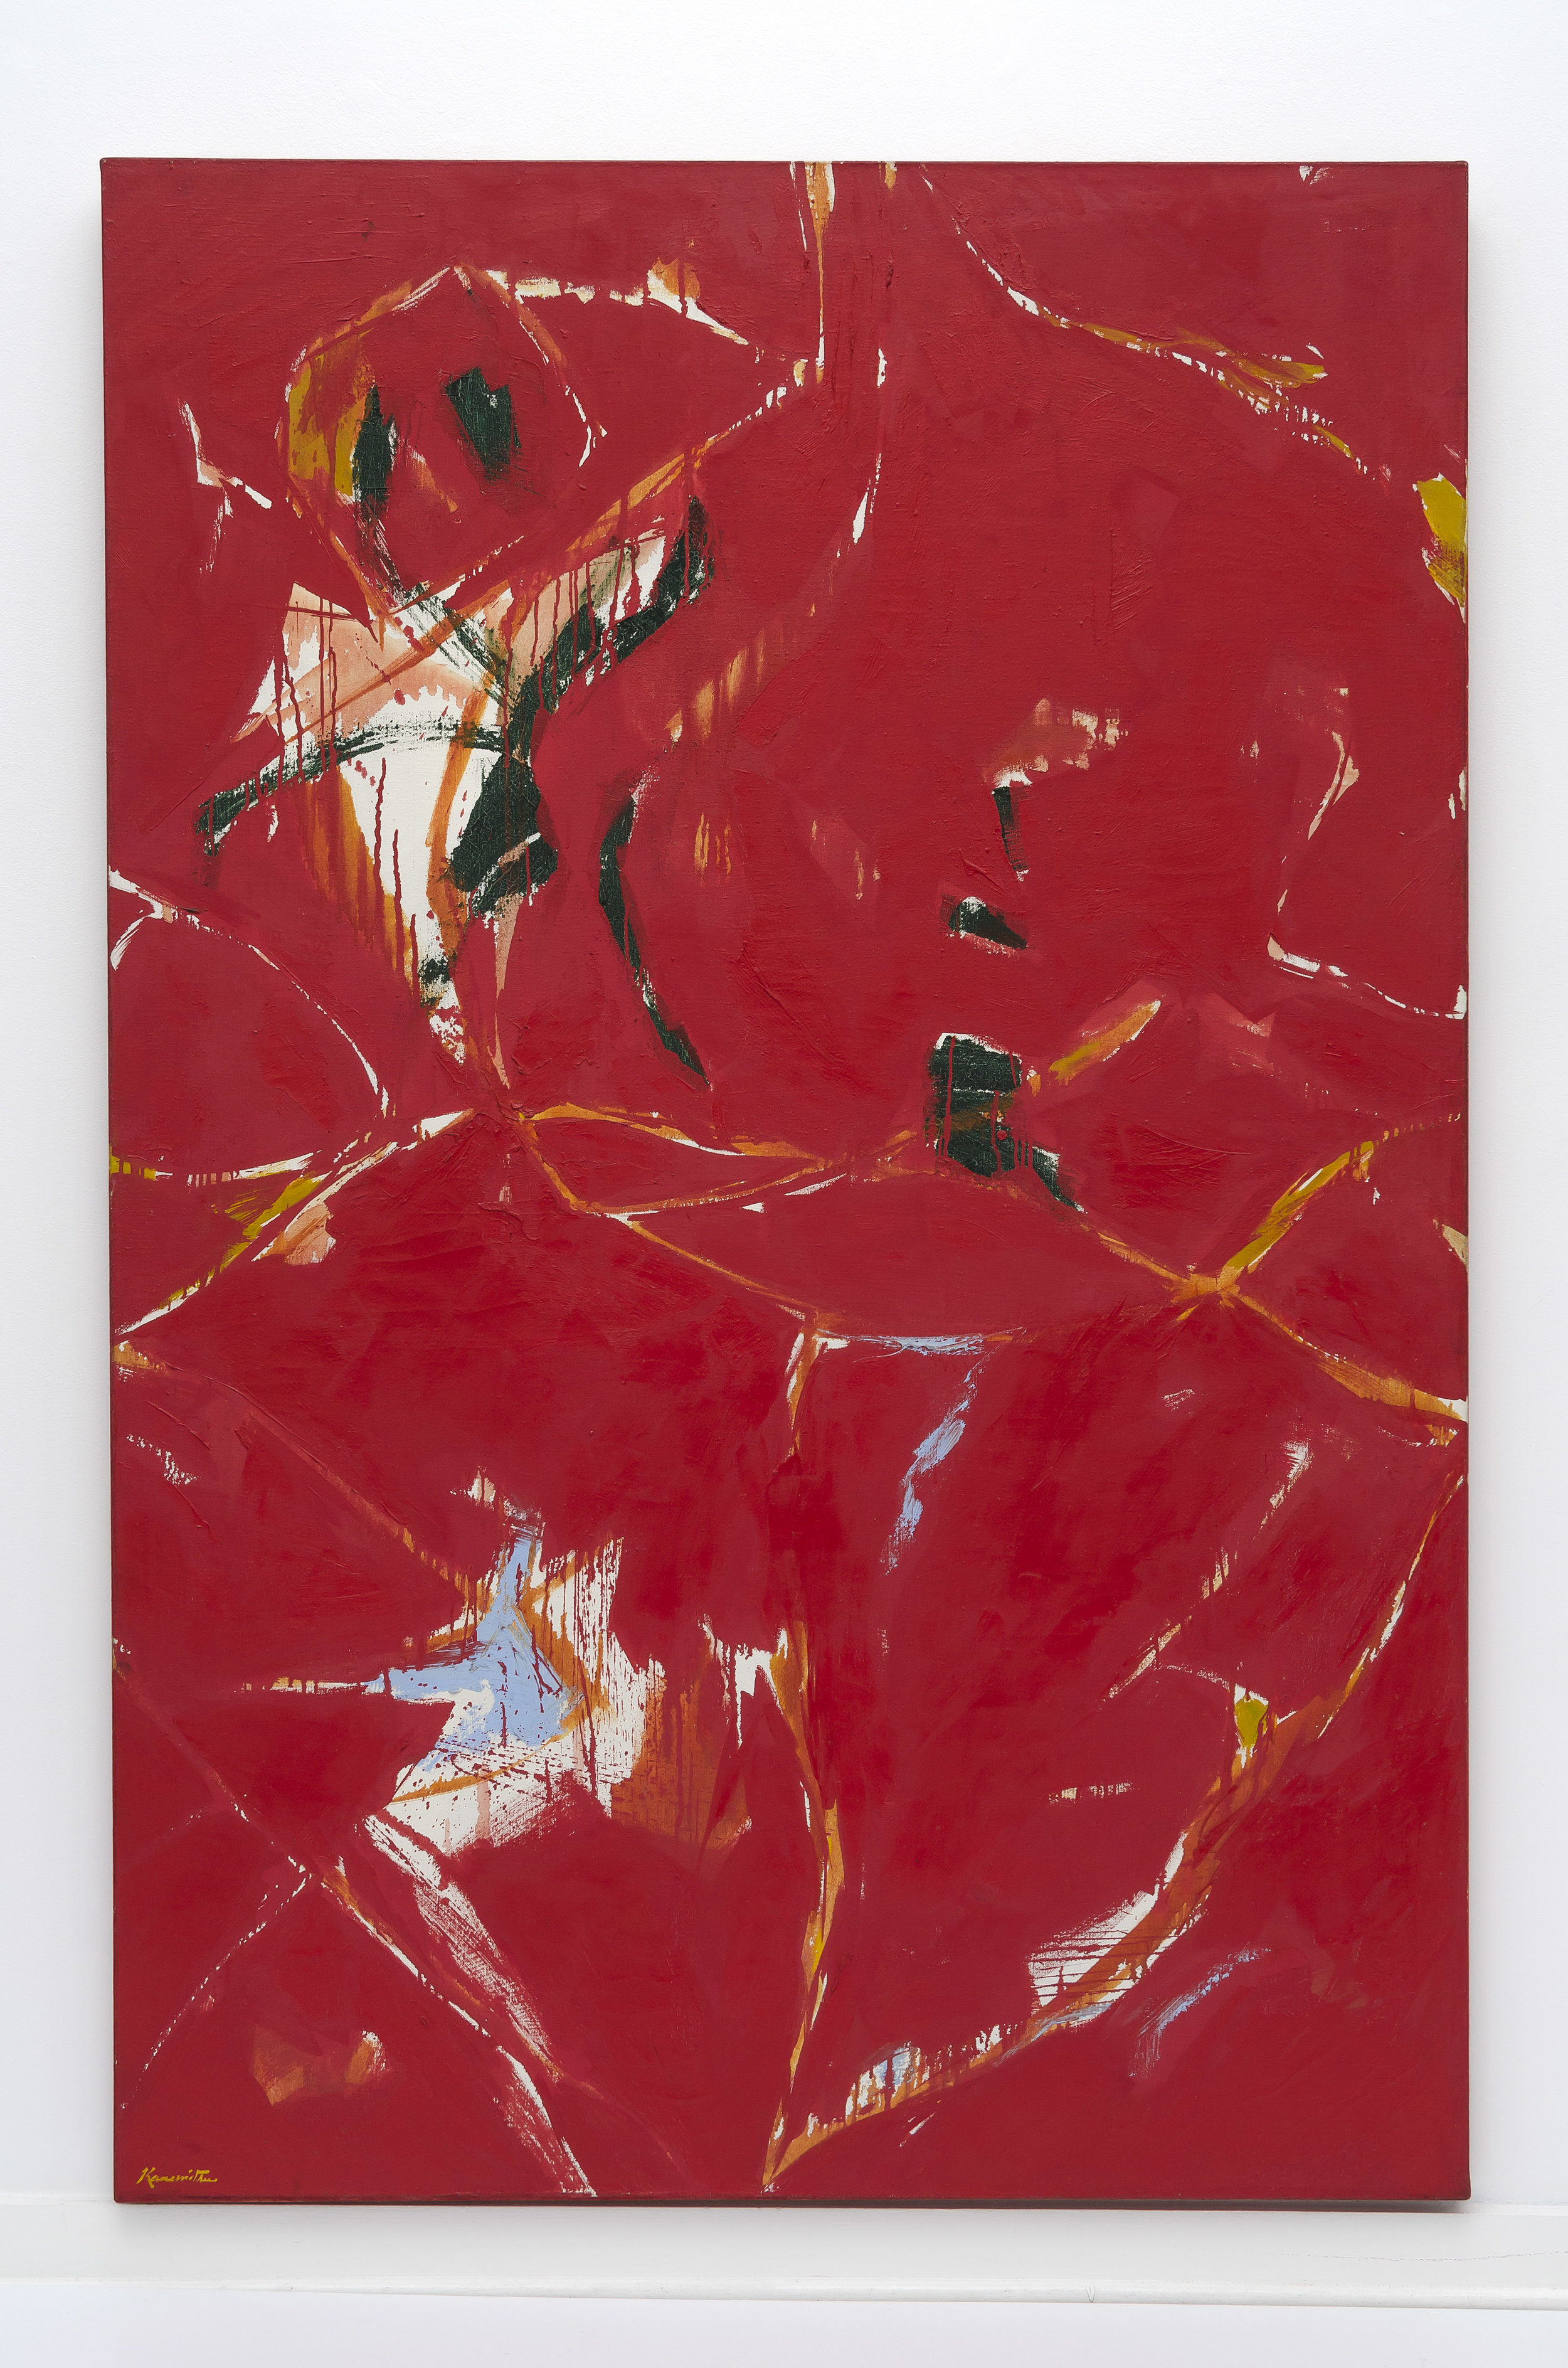 Tavern-on-Red , 1960 oil on canvas 72 x 48 inches; 182.9 x 121.9